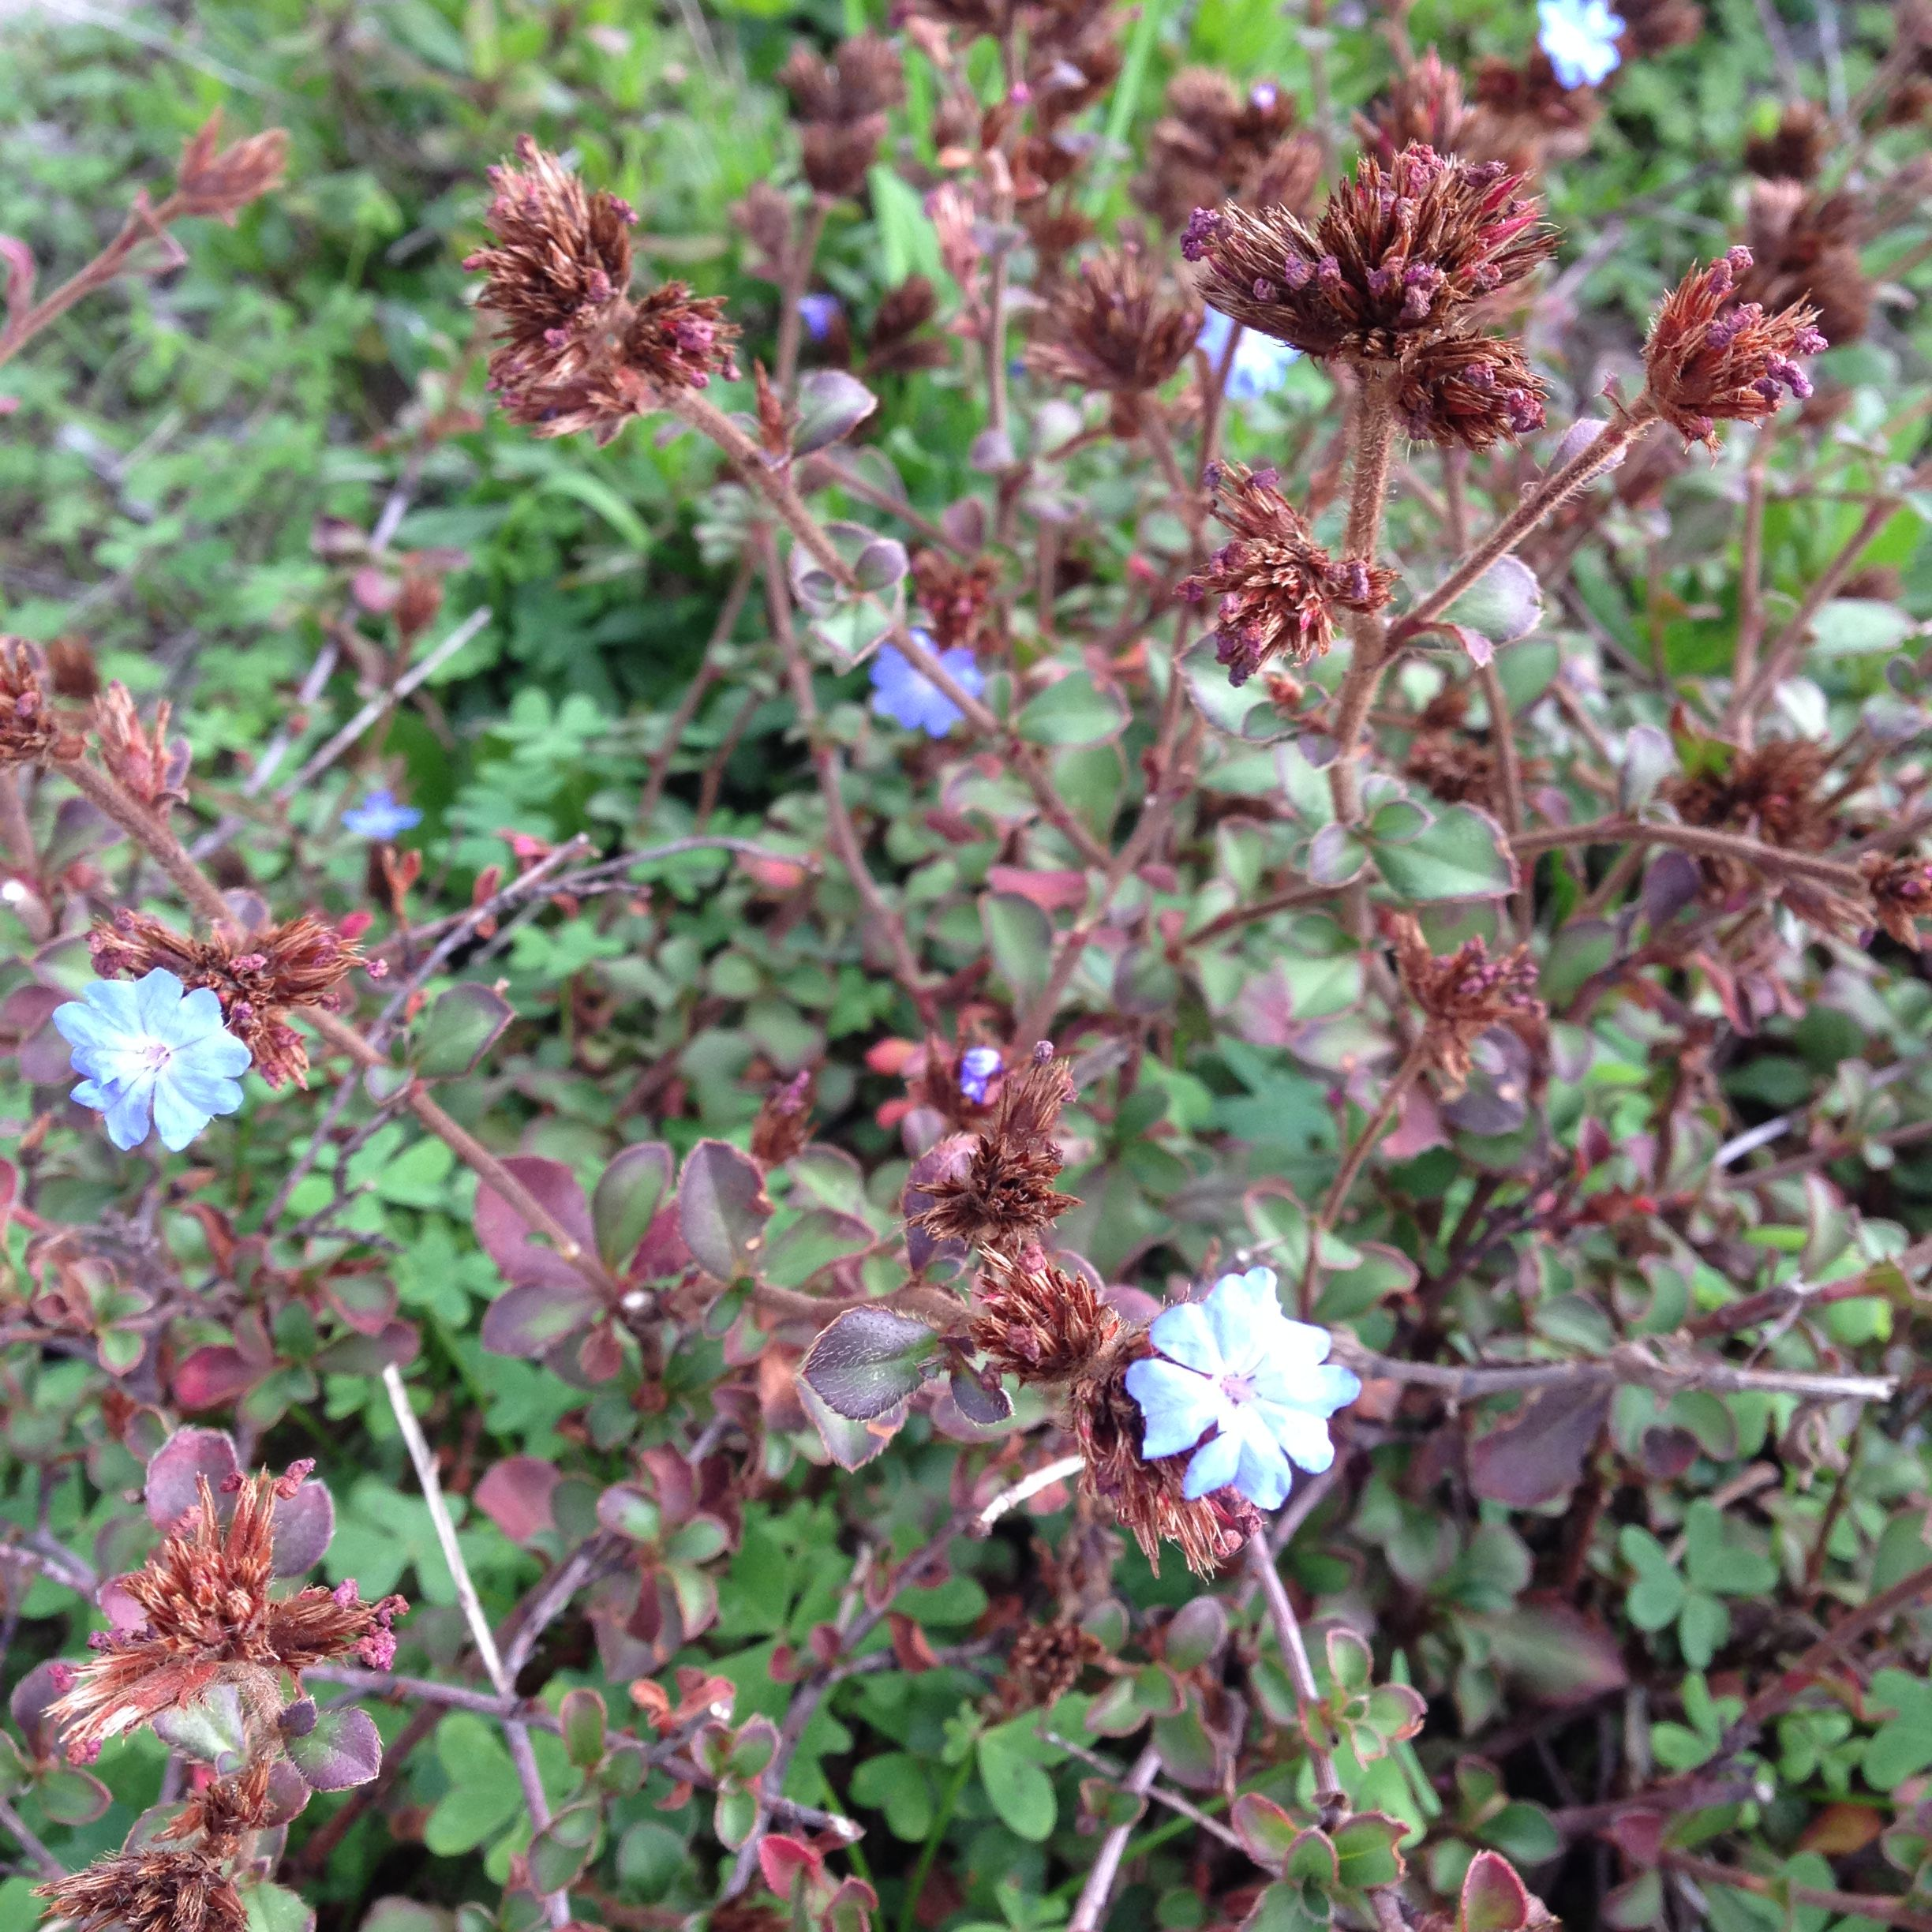 Unknown Low Scraggly Bush With Tiny Bright Blue Flowers Front